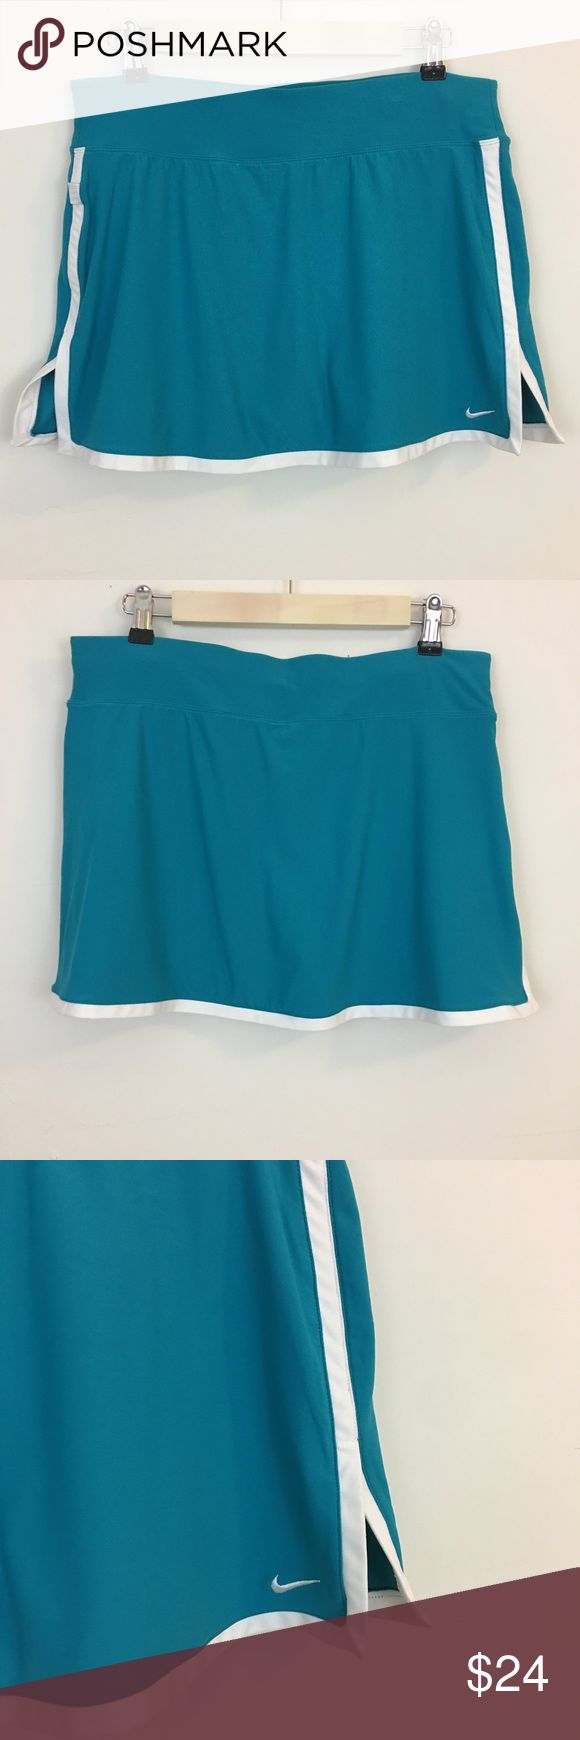 "Nike Running/Tennis/Golf Skort Skirt Nike Running/Tennis/Golf Skort Skirt in a pretty Turquoise color with White accent color.  Side slit and compression shorts under skirt.  Size: Medium Waist: 15.5"" (flat lay) Length: 14"" Nike Skirts"